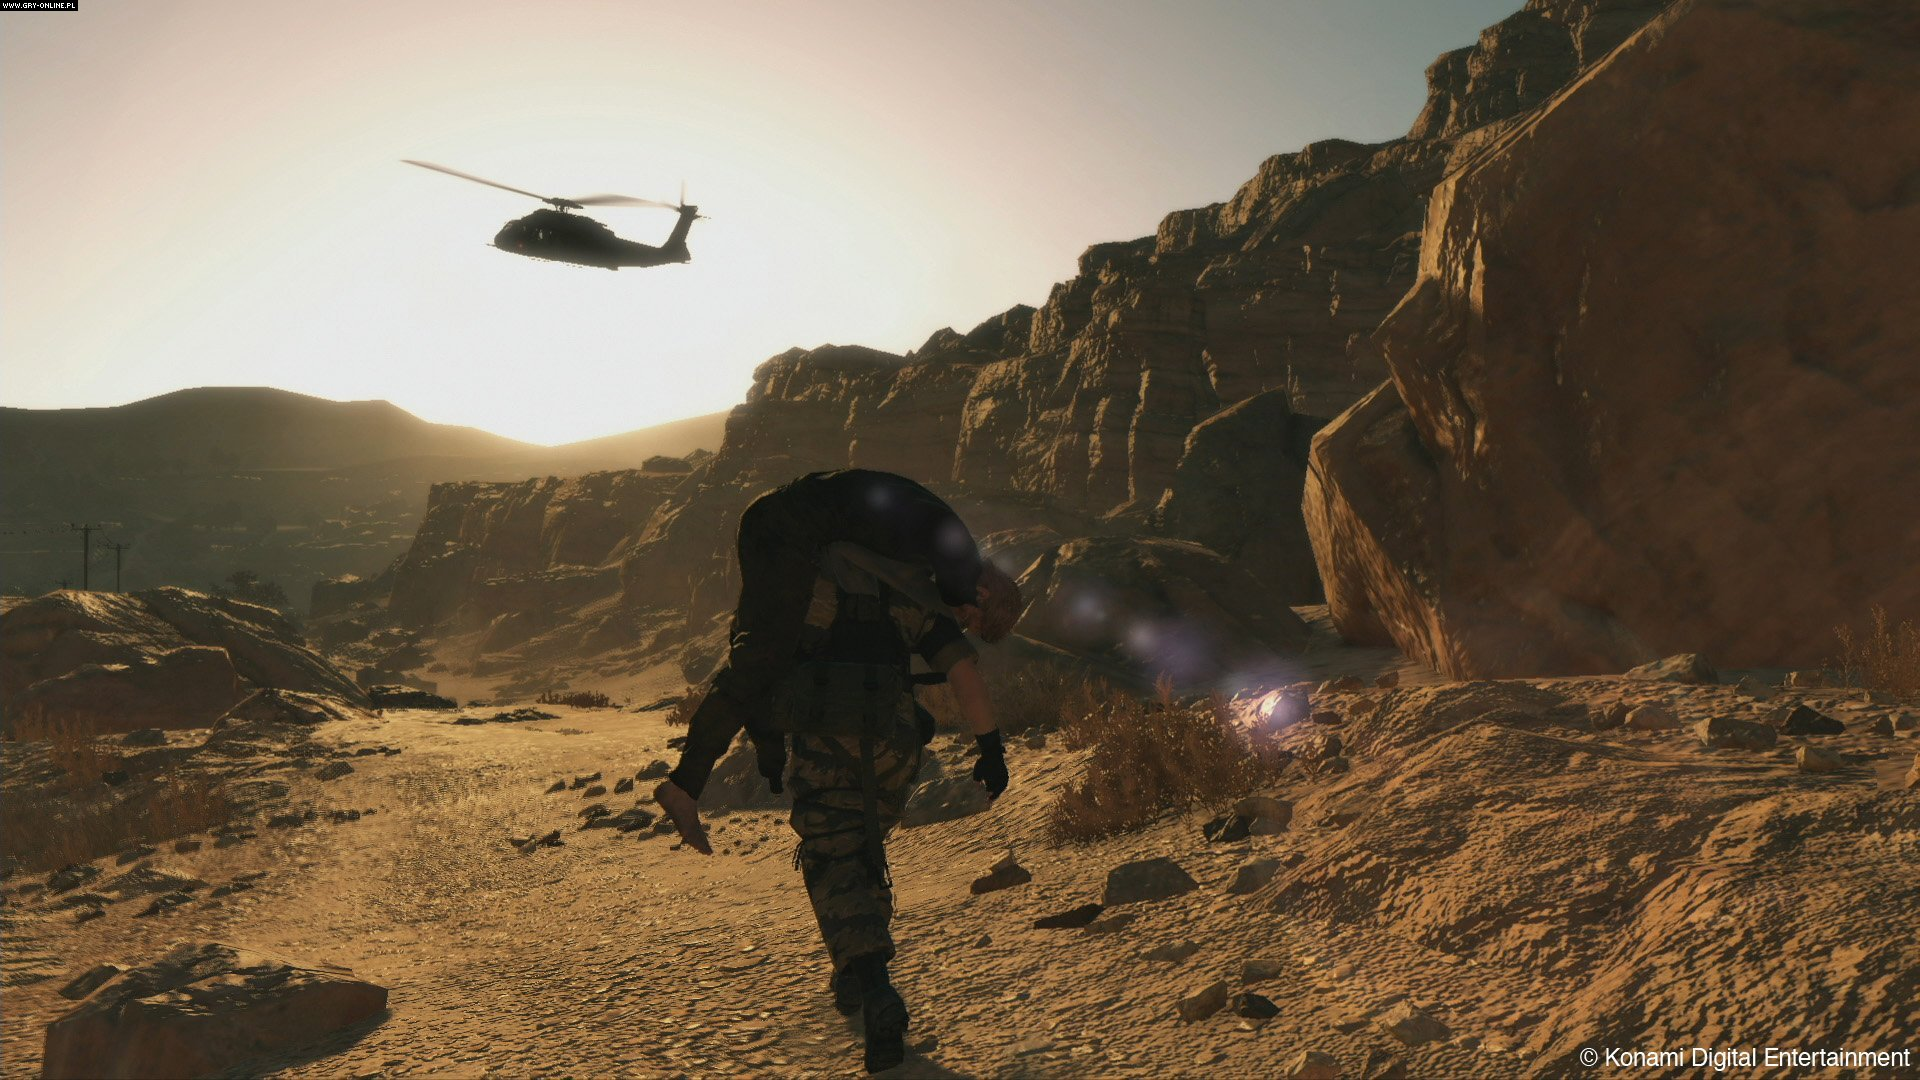 Metal gear solid v wallpapers